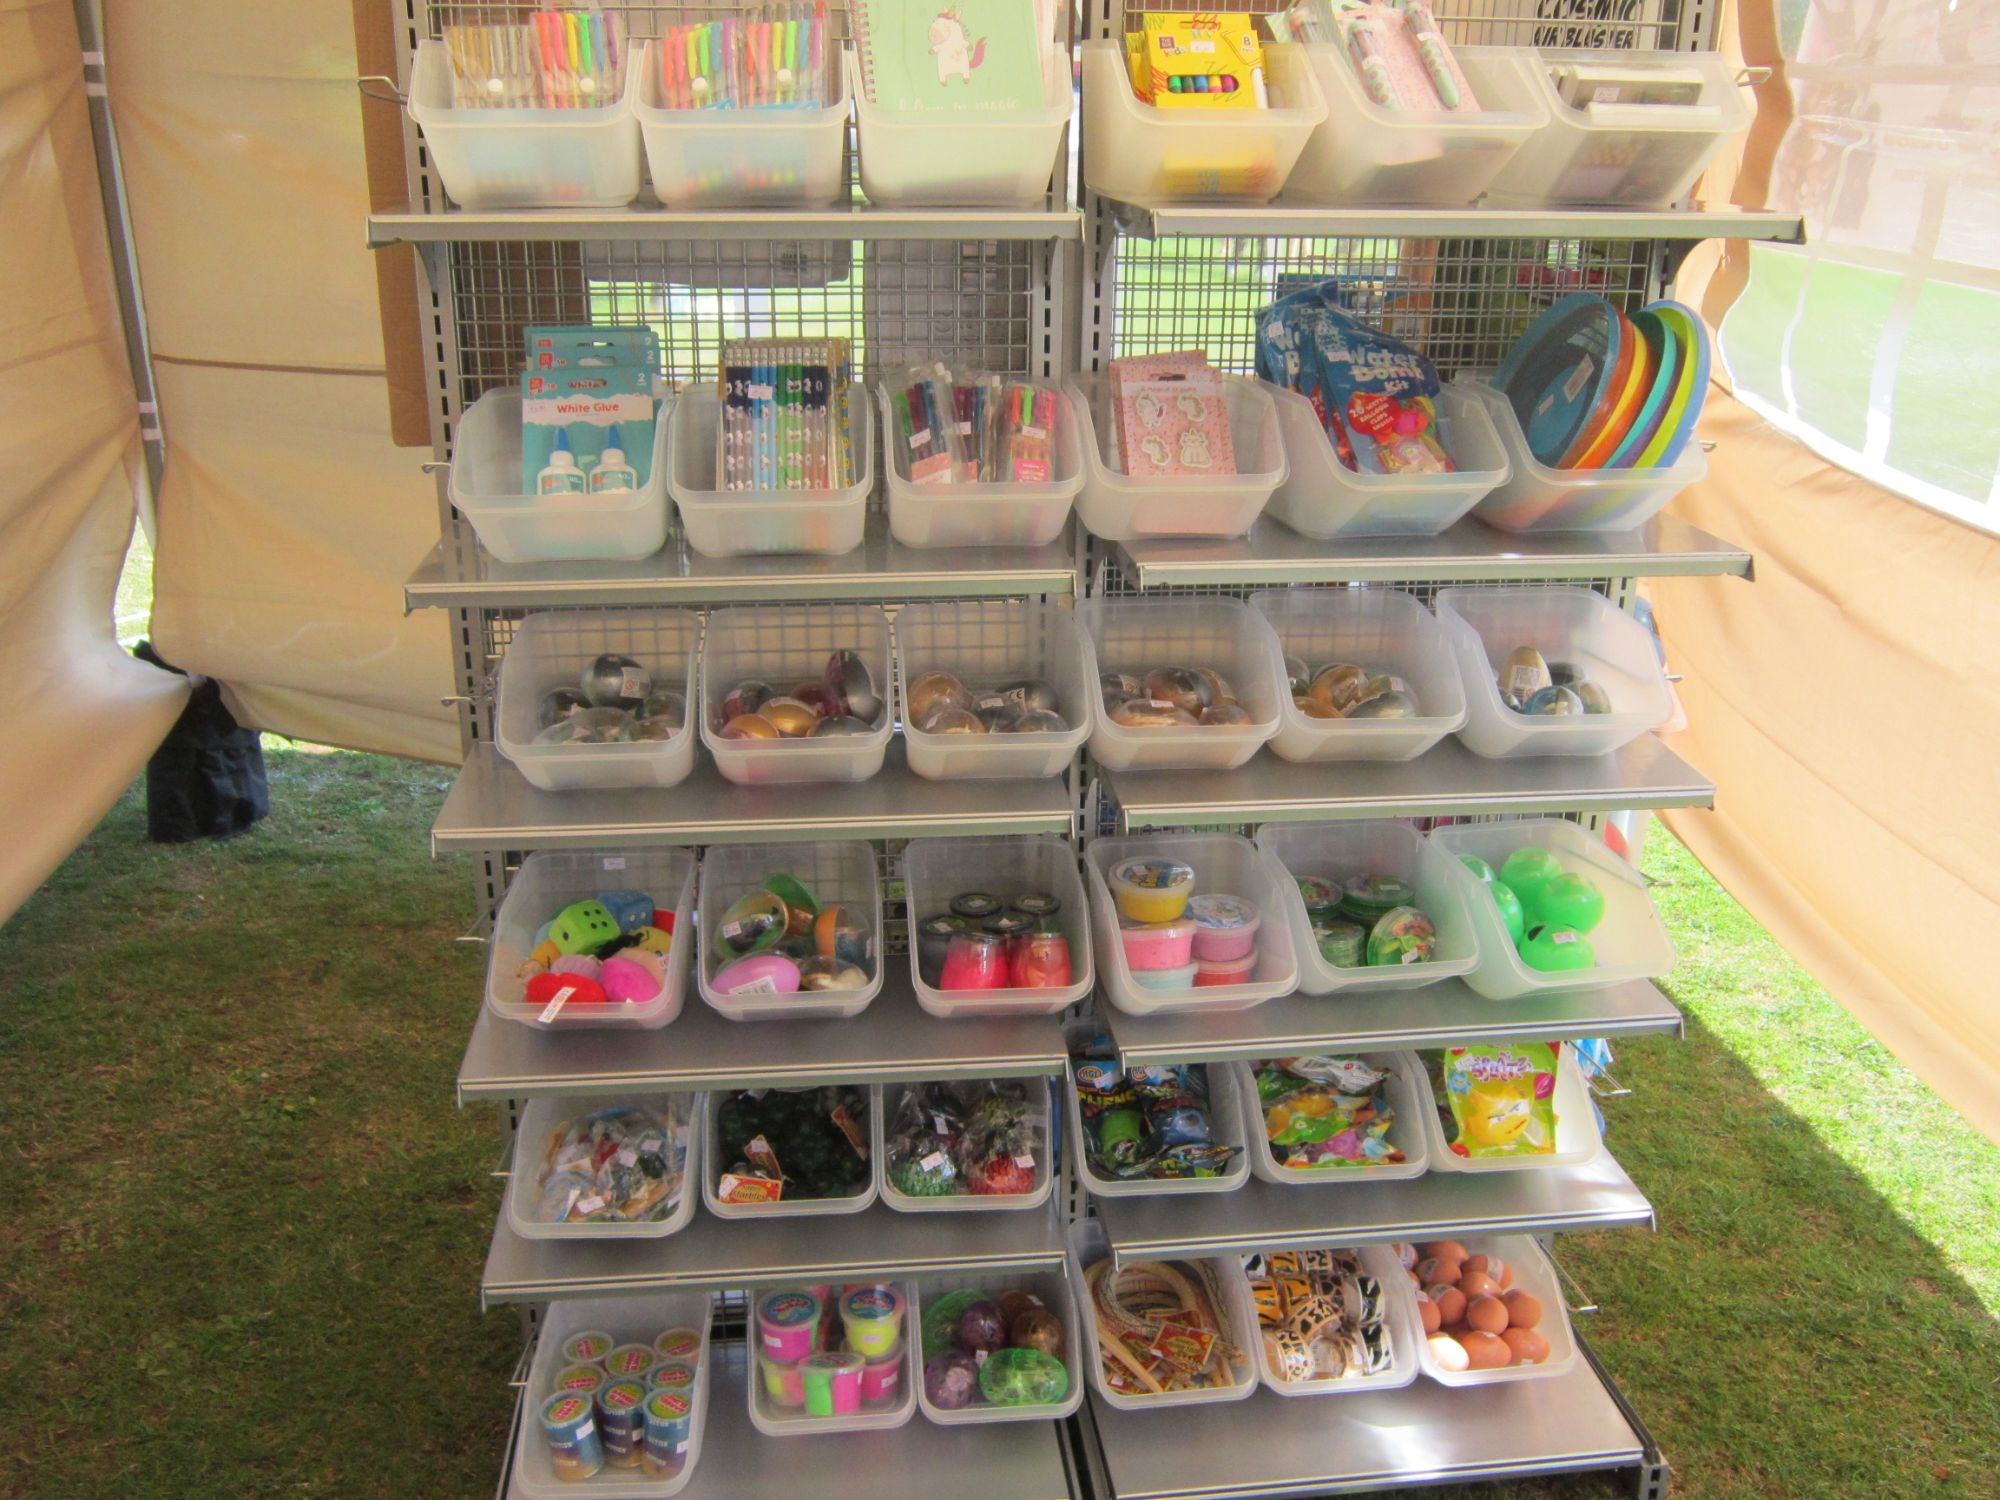 2019 Shrivenham Village Fete Small Toy & Stationery Stand